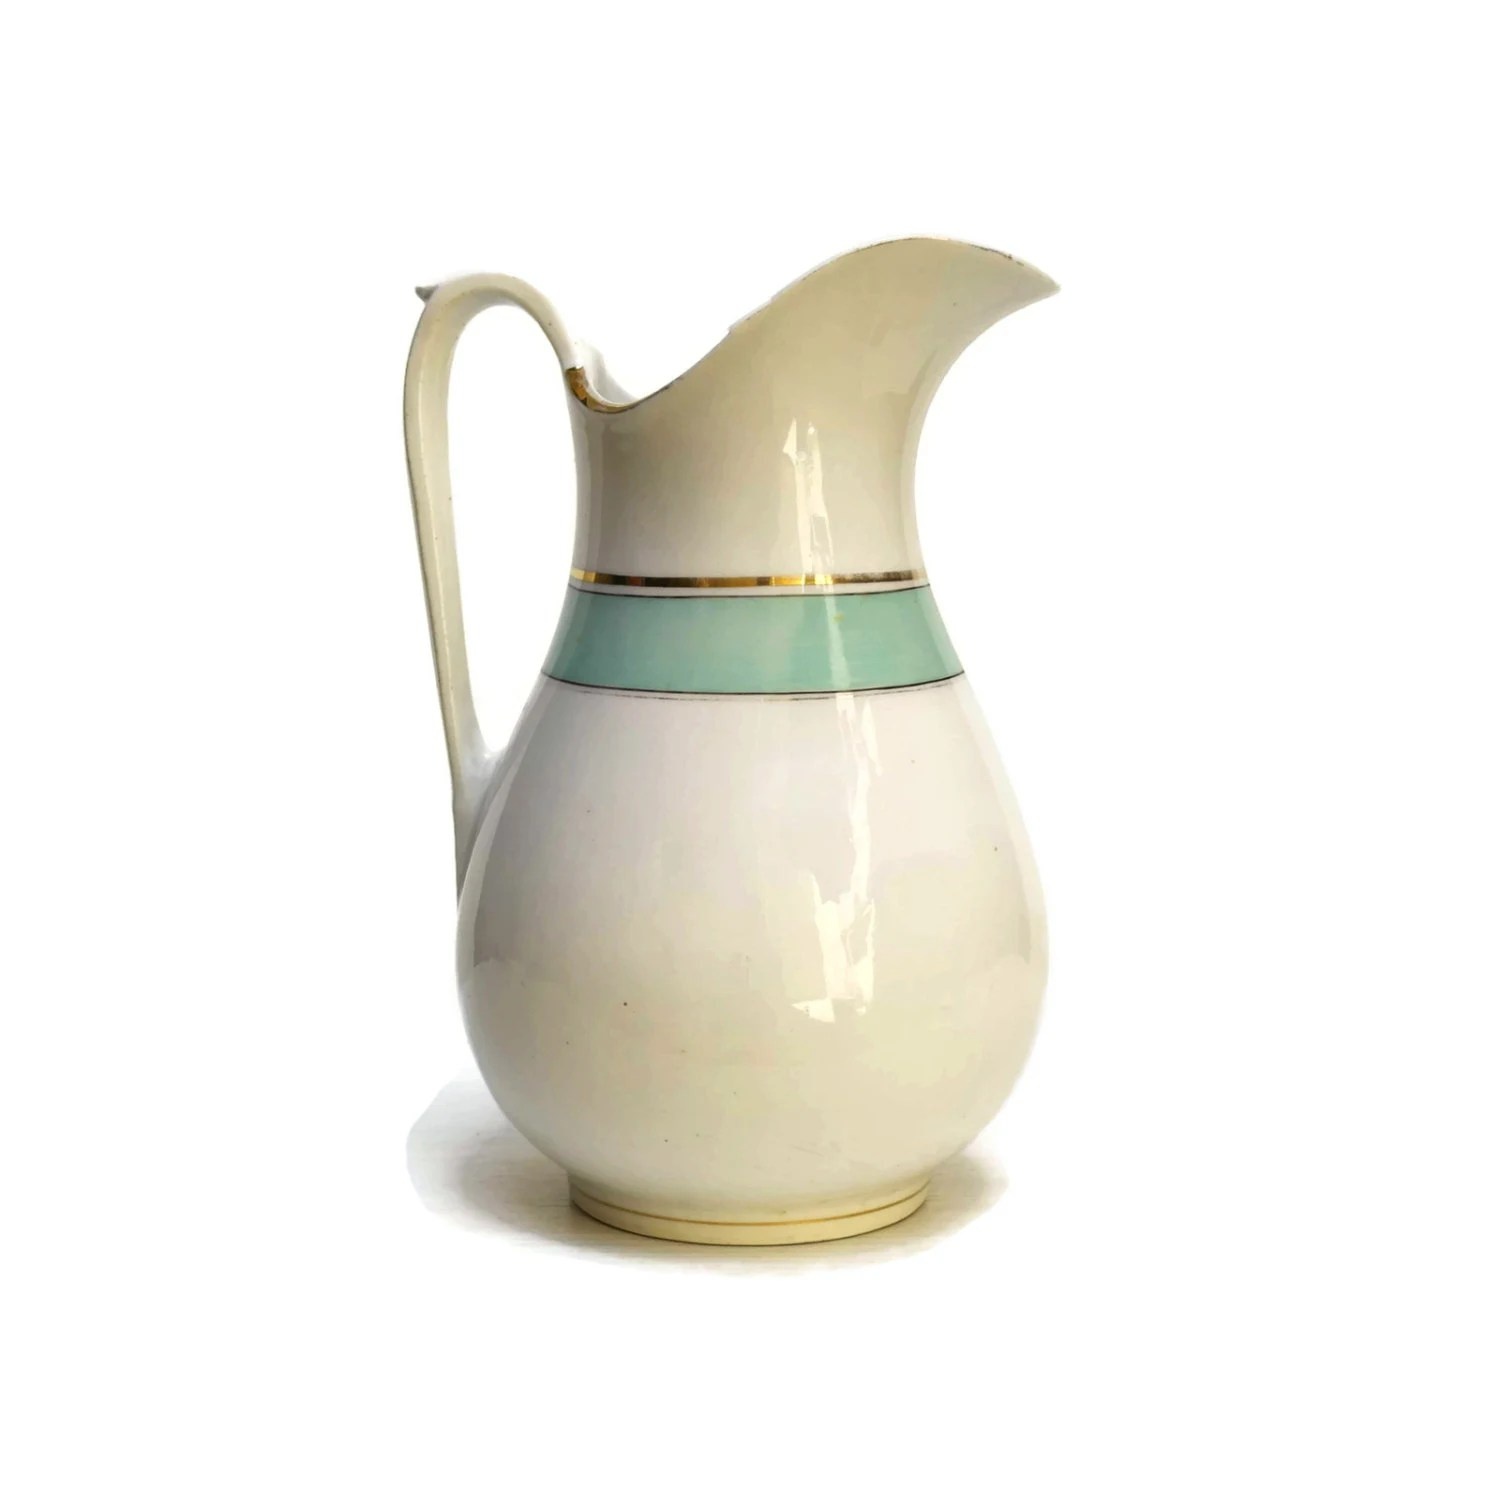 Water Pitcher Ceramic Large Vintage French Ceramic Aqua Water Pitcher French Home